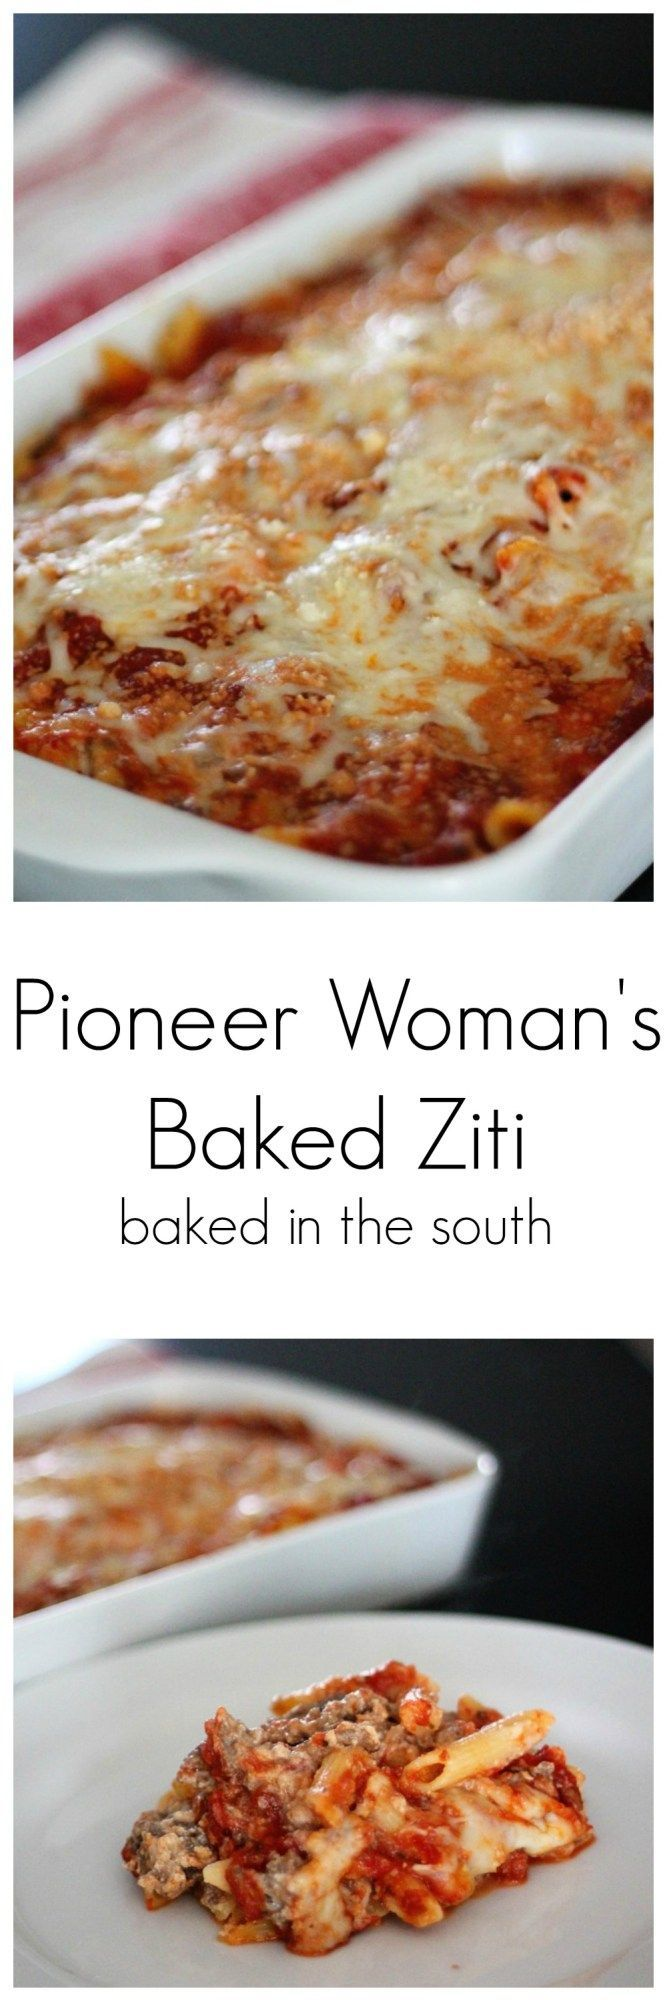 5.0 from 1 reviews Pioneer Woman's Baked Ziti Print Ingredients ◾1 pound Italian Sausage ◾1 pound Ground Bee ◾2 Tablespoons Olive Oil ◾3 cloves Garlic, Minced ◾